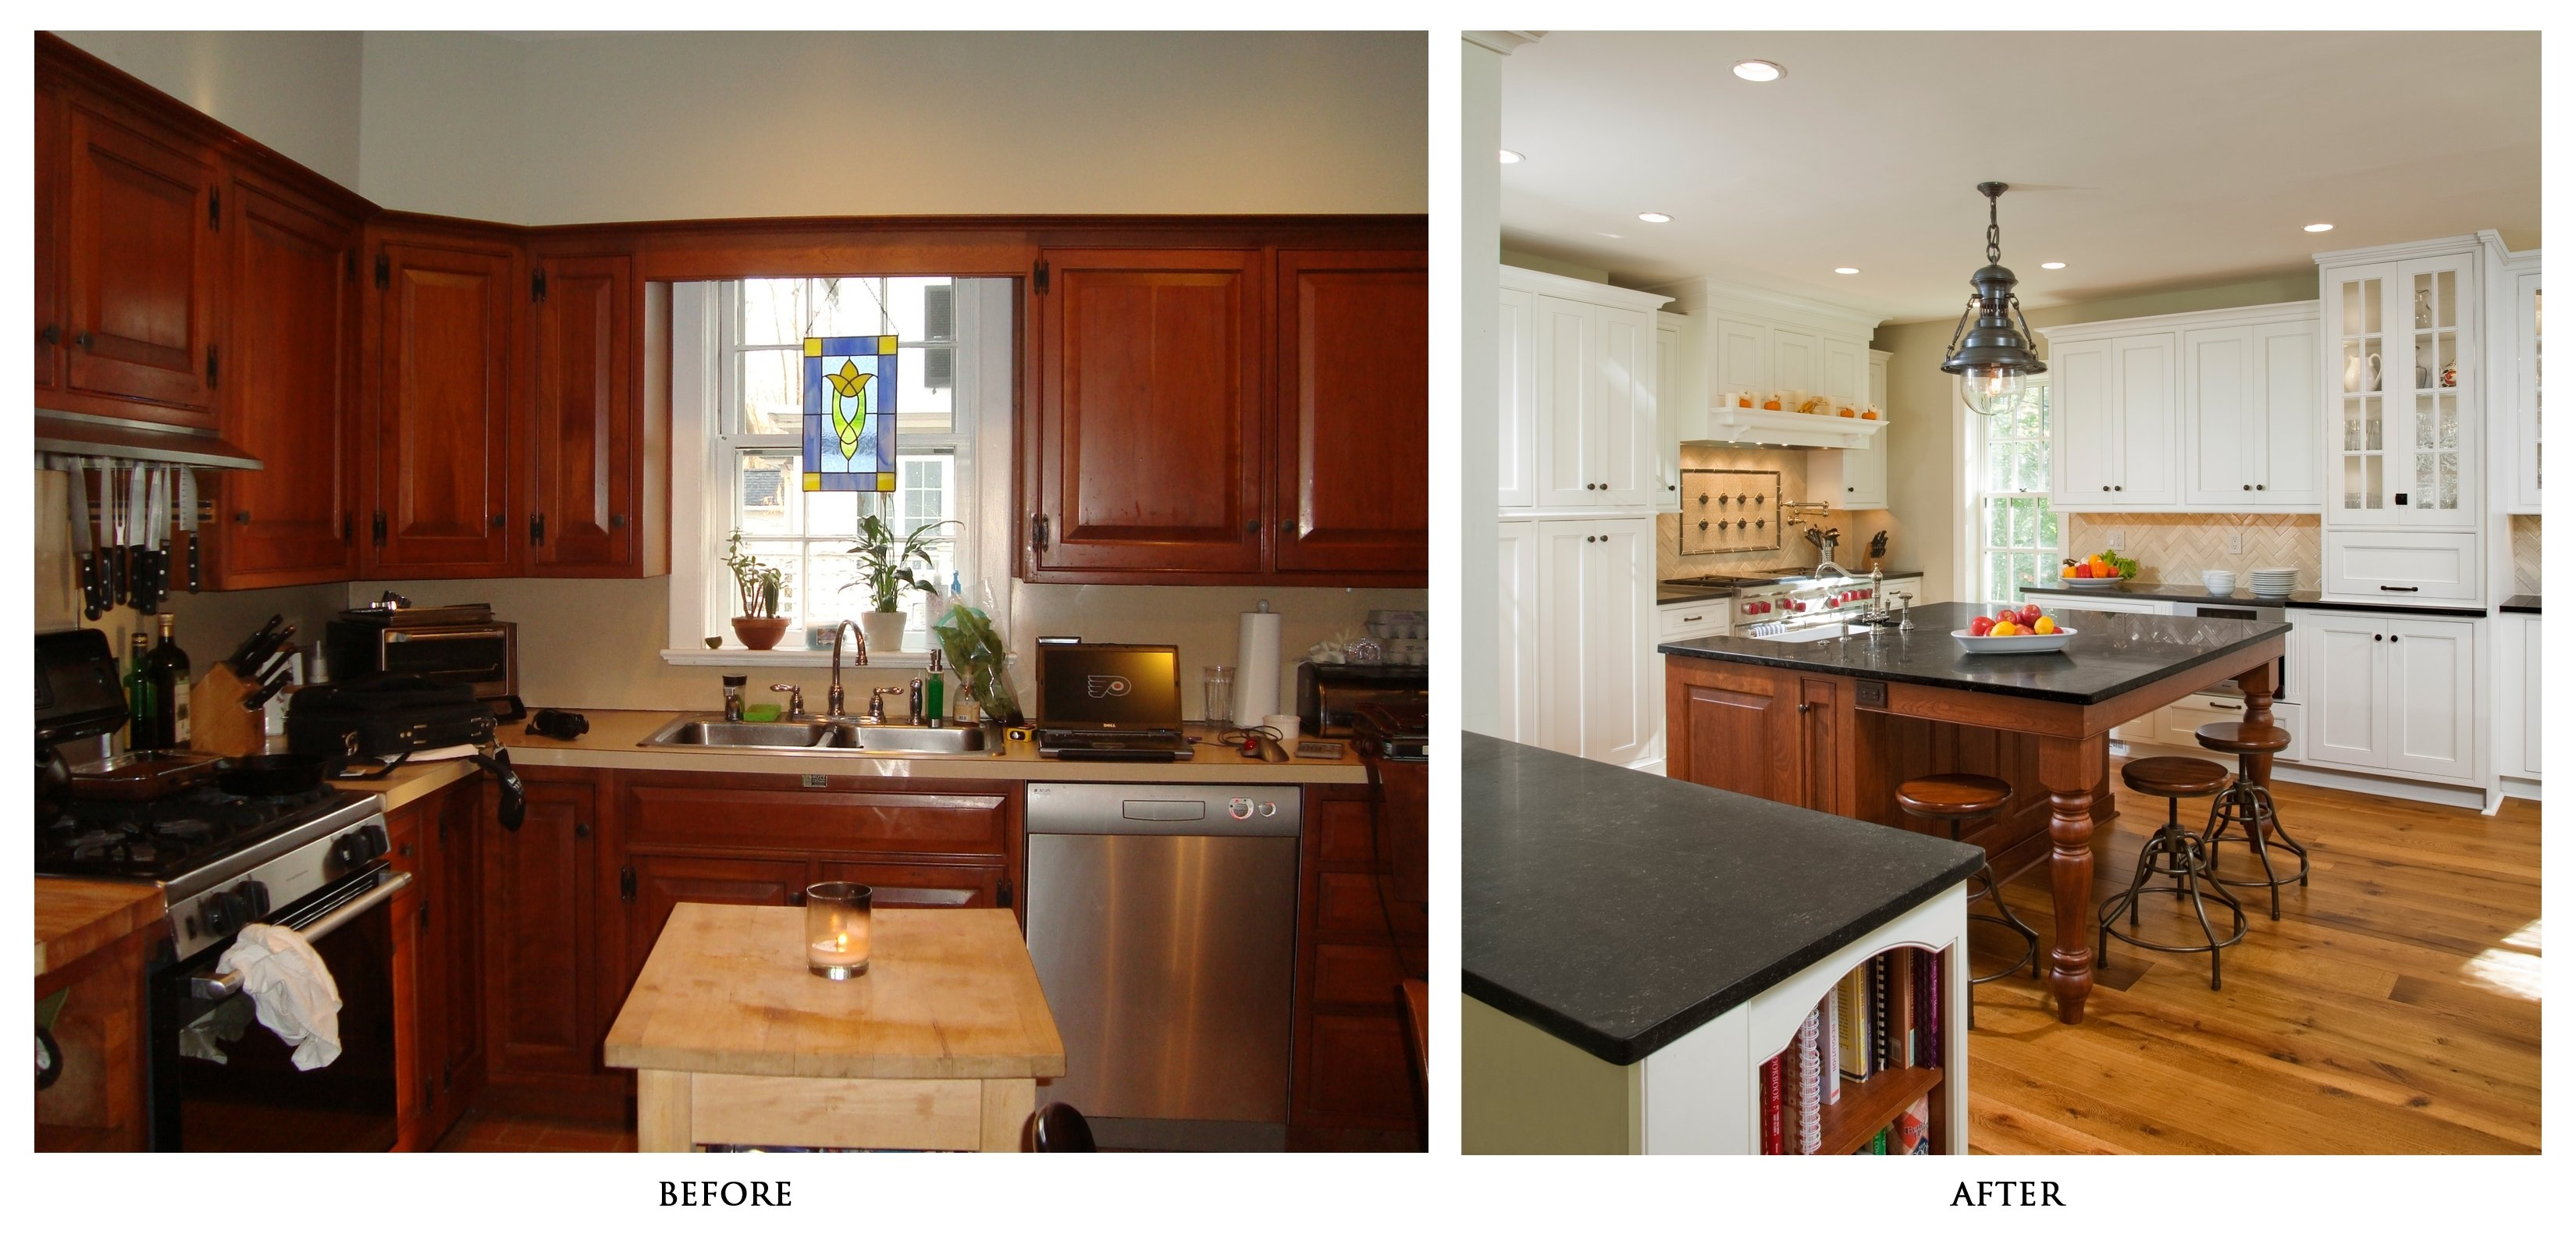 10 Fabulous Kitchen Remodel Ideas Before And After get the fresh and cool outlook inspiration with kitchen remodeling